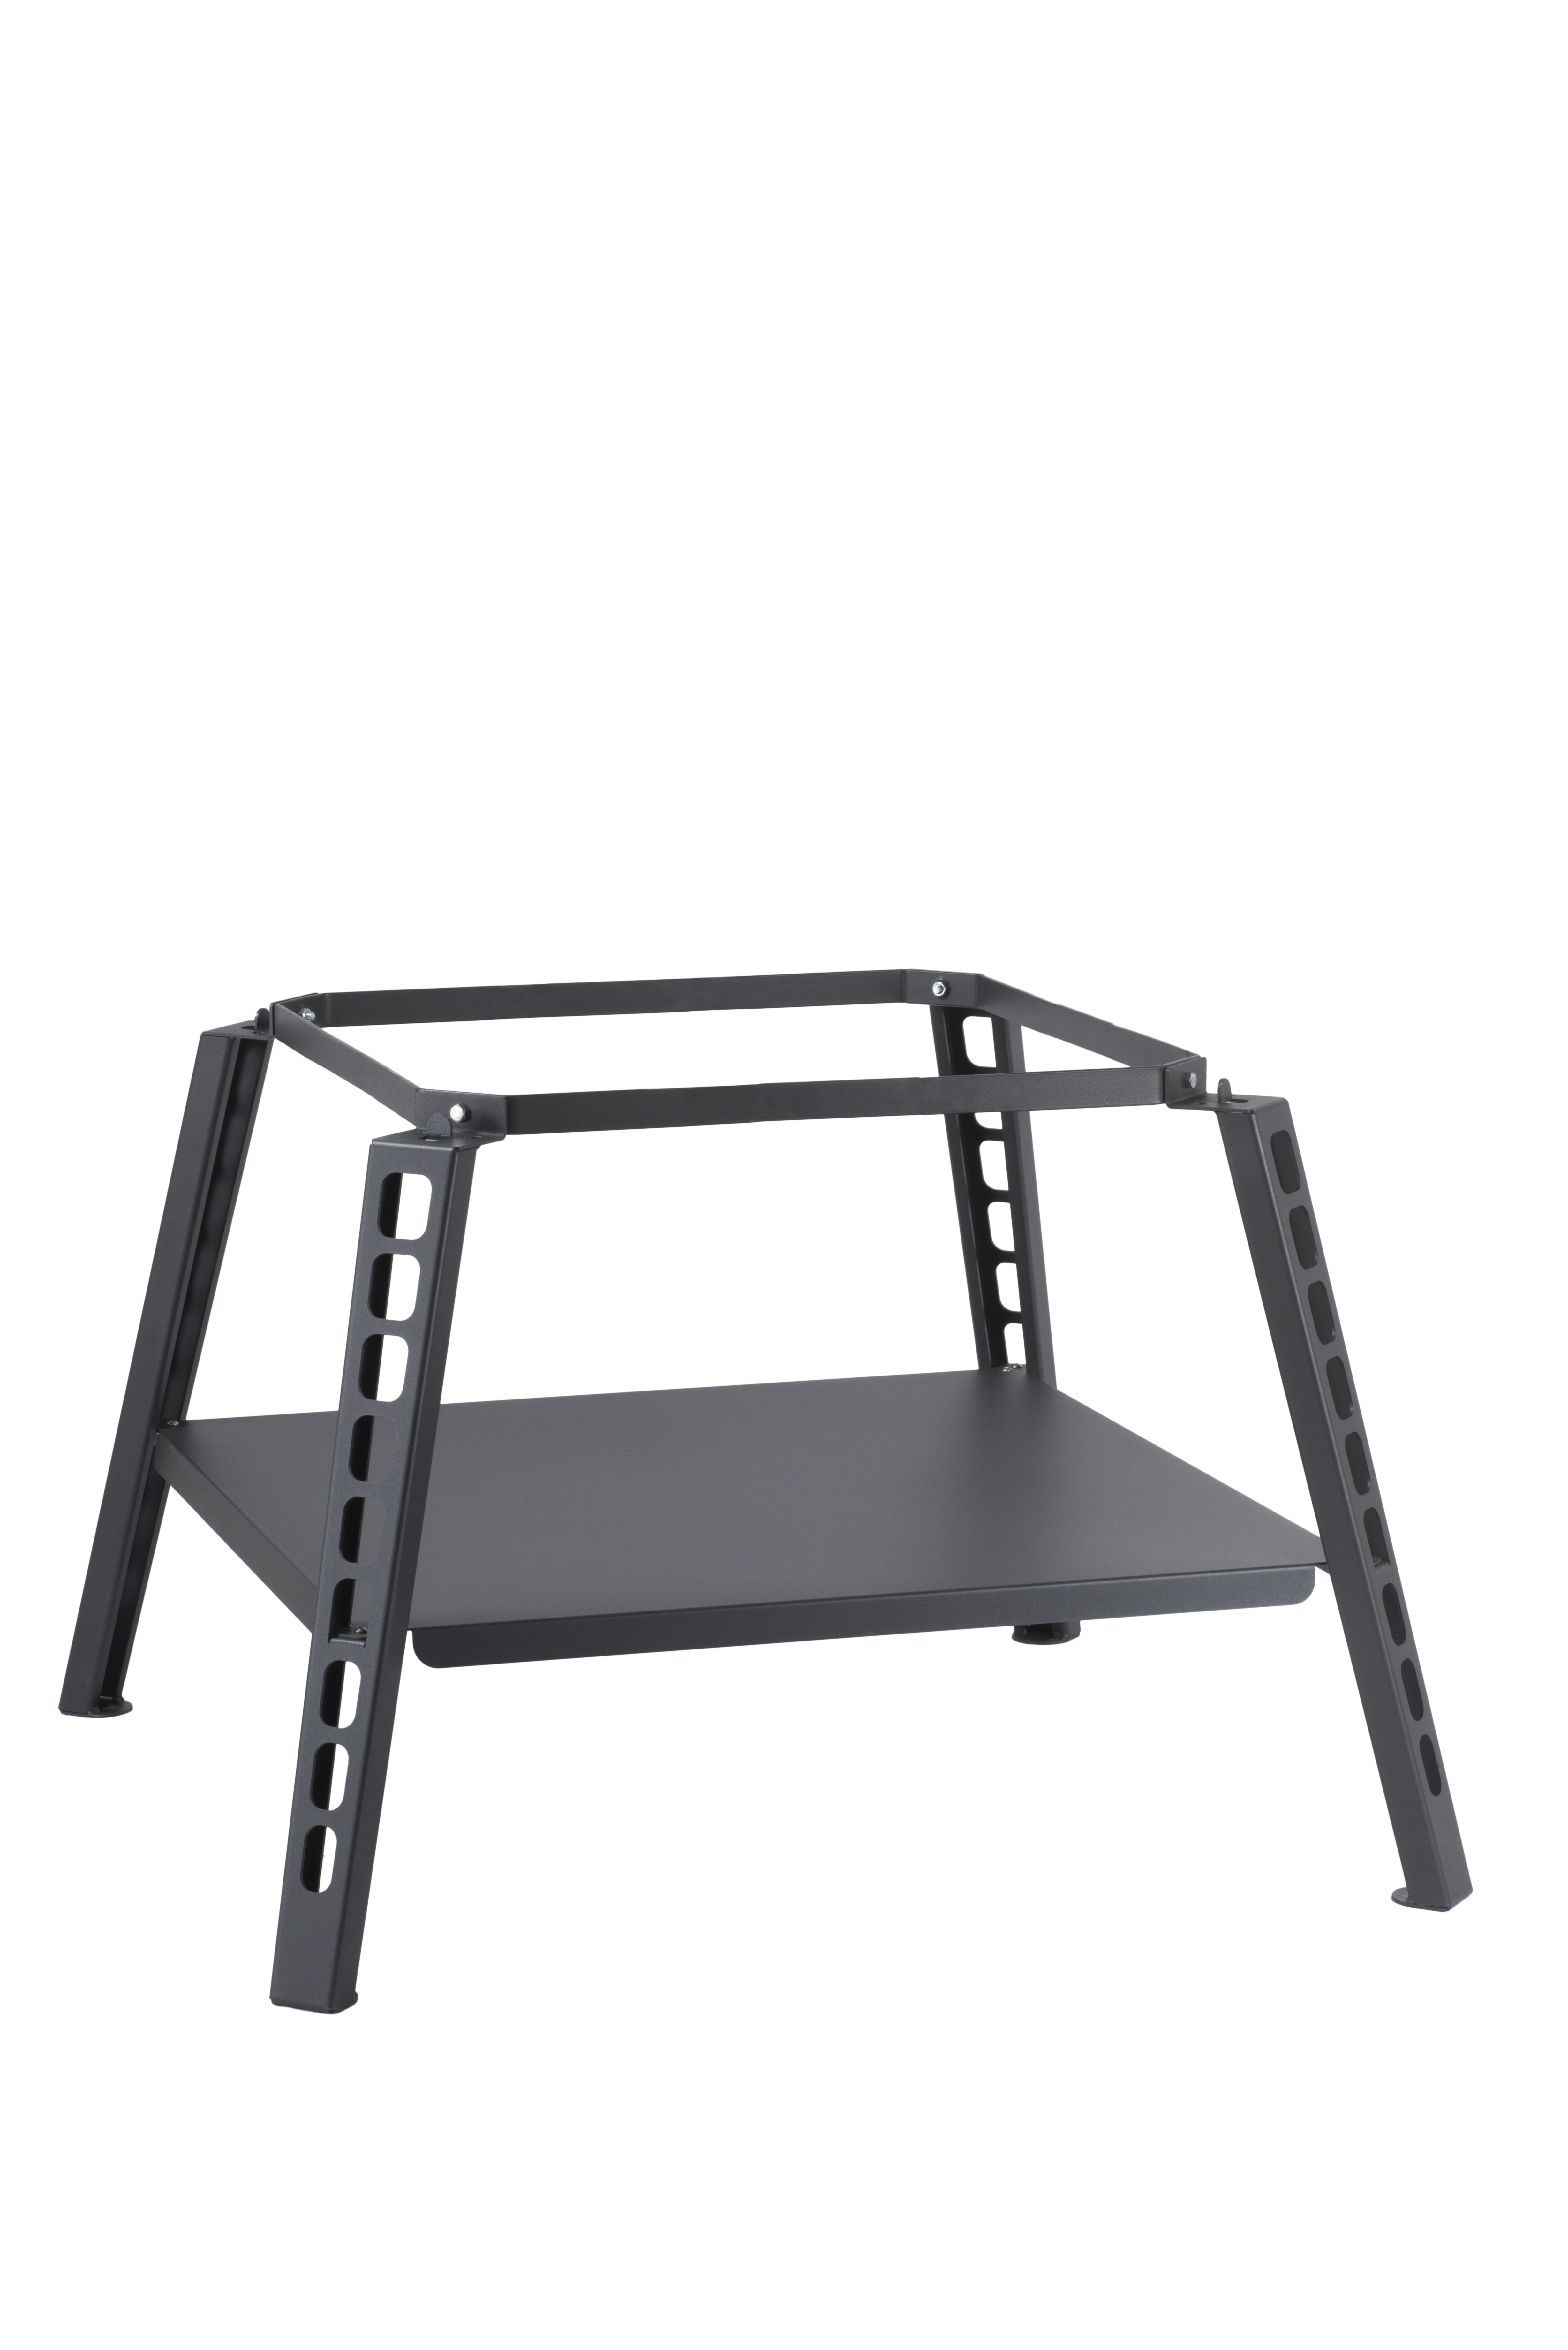 Fornino 60 – 2 part wheeled metal stand